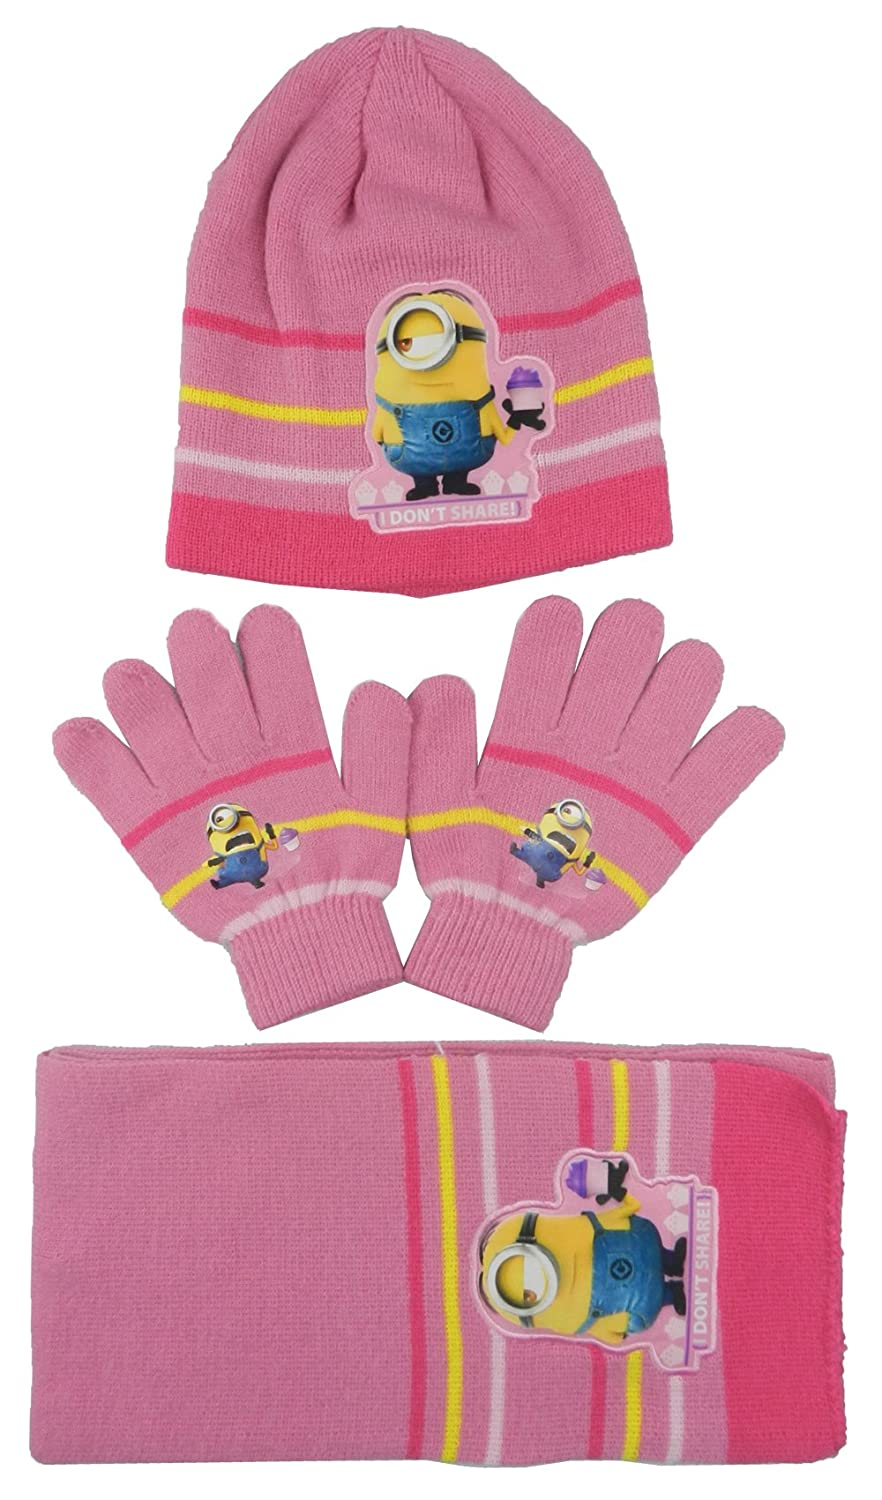 Boys & Girls Despicable Me Minions Next Big Thing Hat Scarf & Gloves Set sizes from 3 to 10 Years-780-182